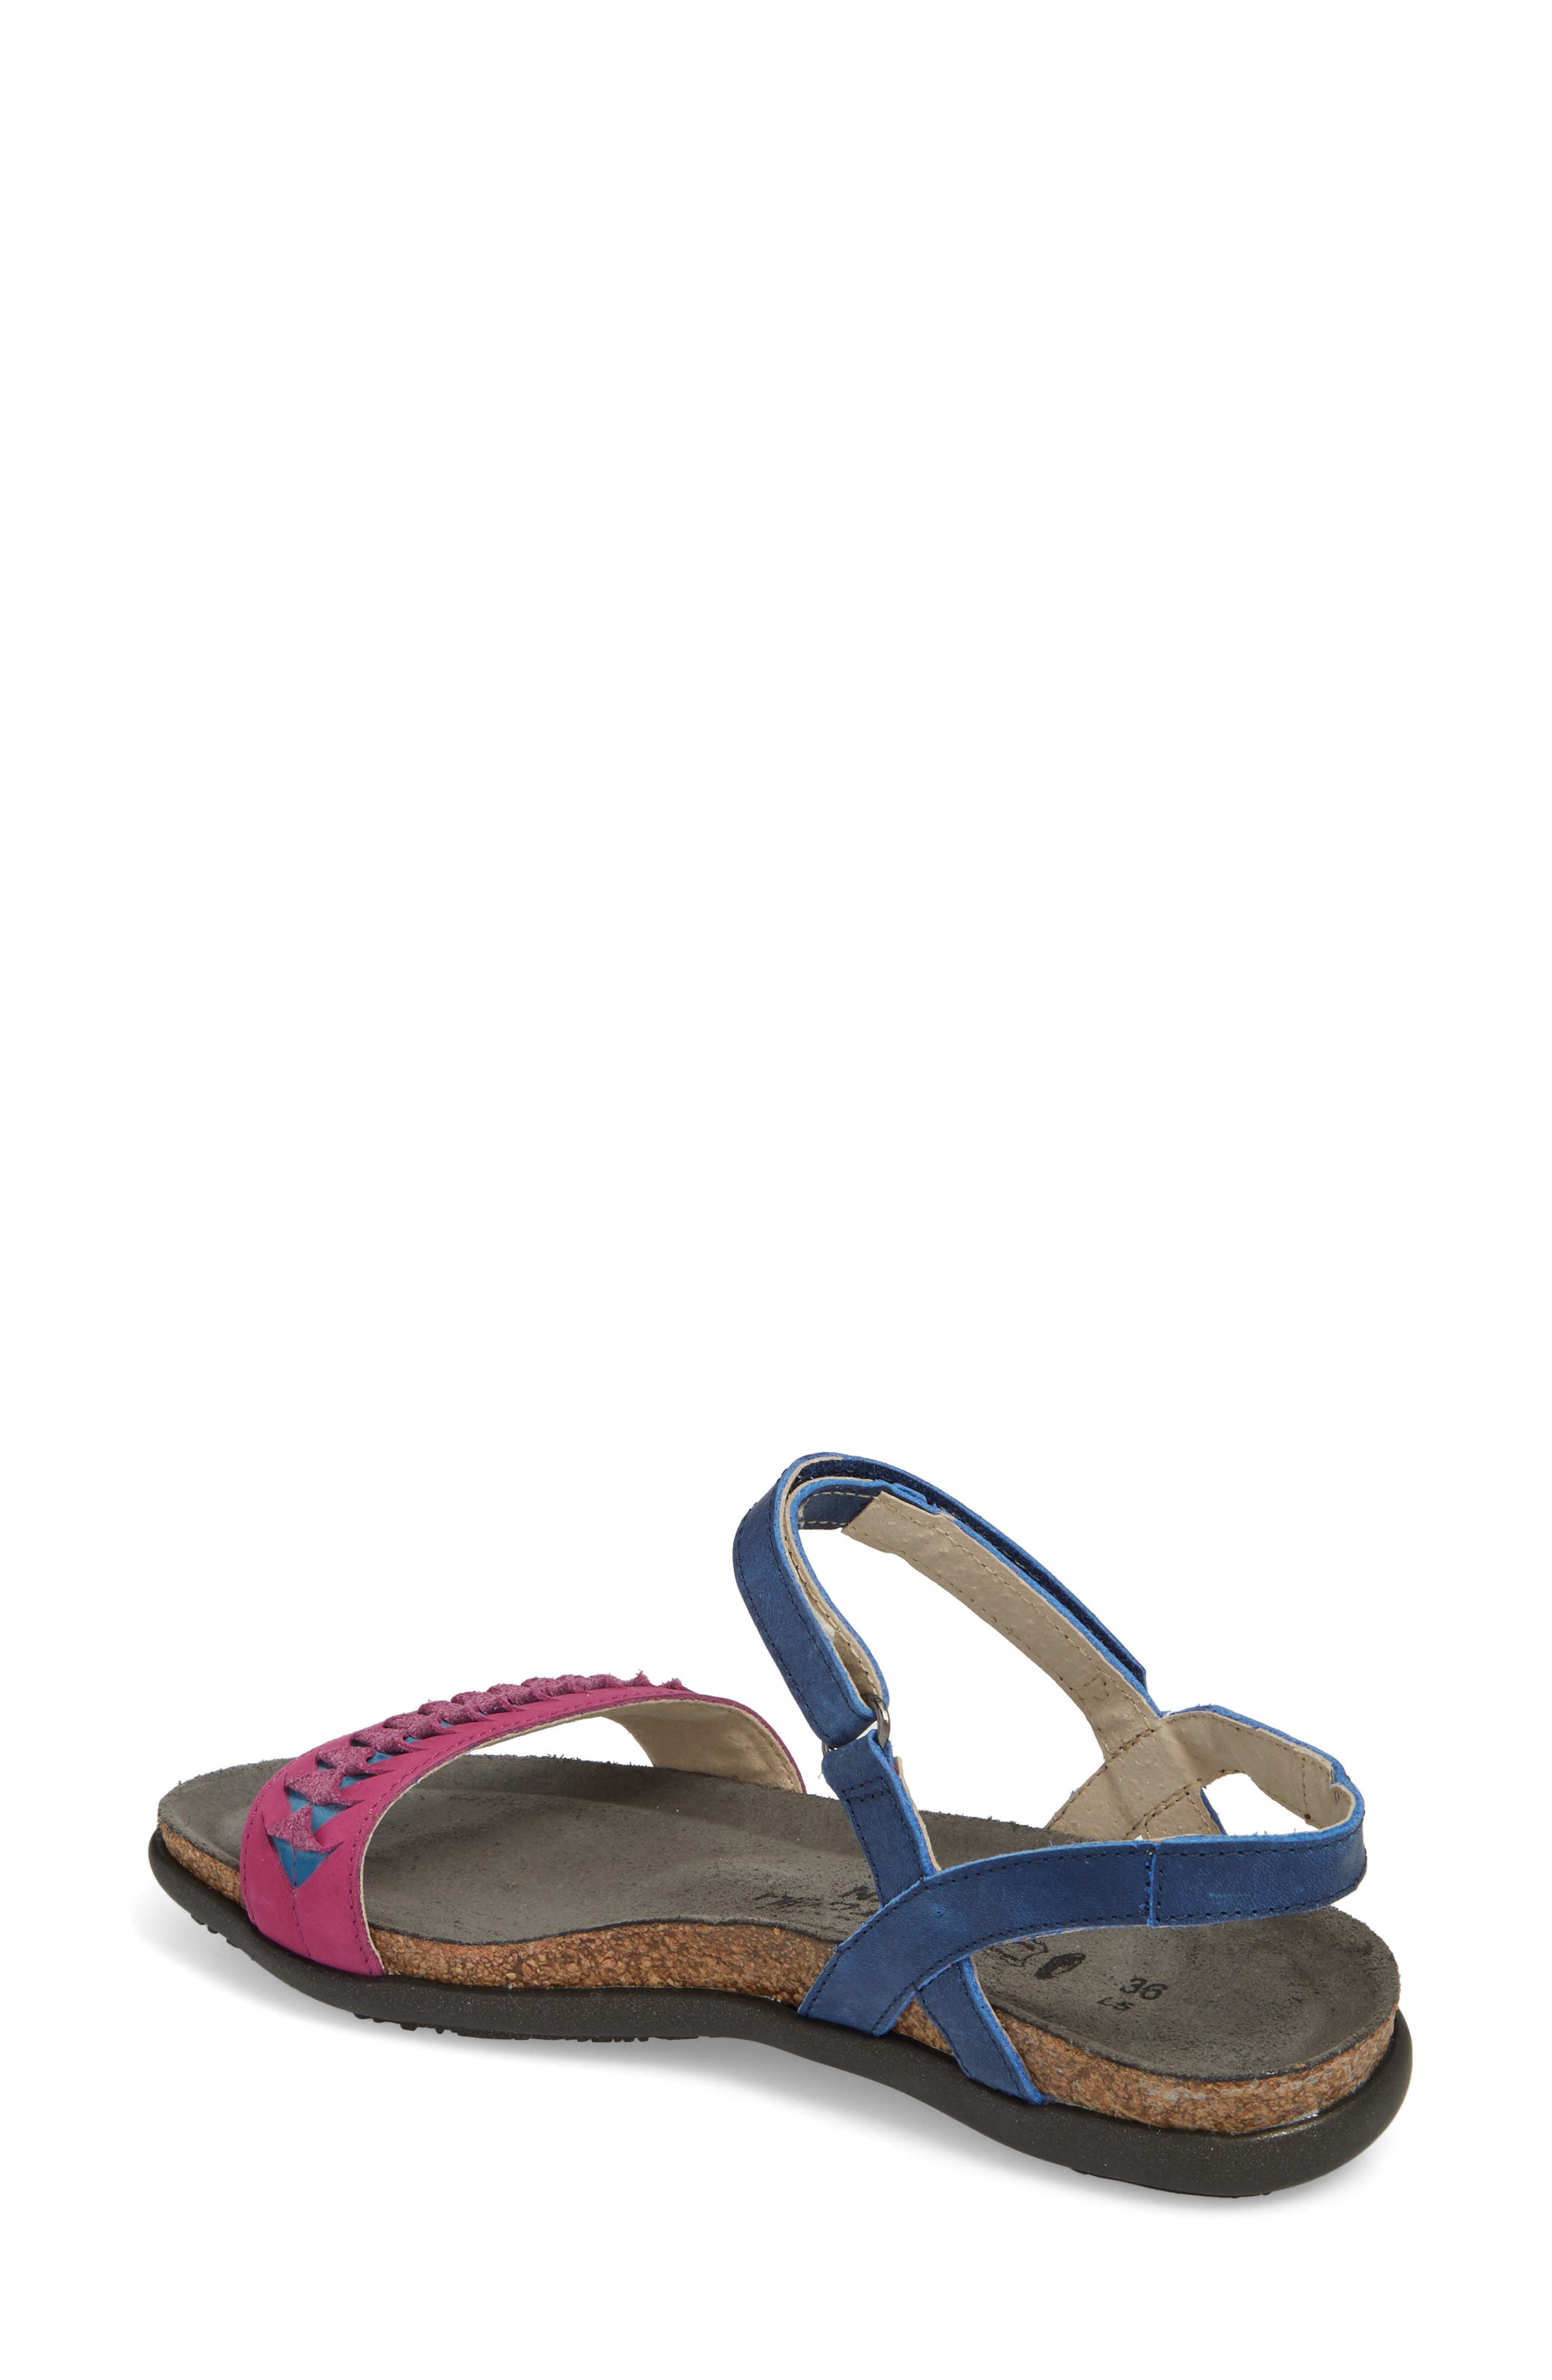 Marble Sandal,                             Alternate thumbnail 2, color,                             Oily Blue Nubuck